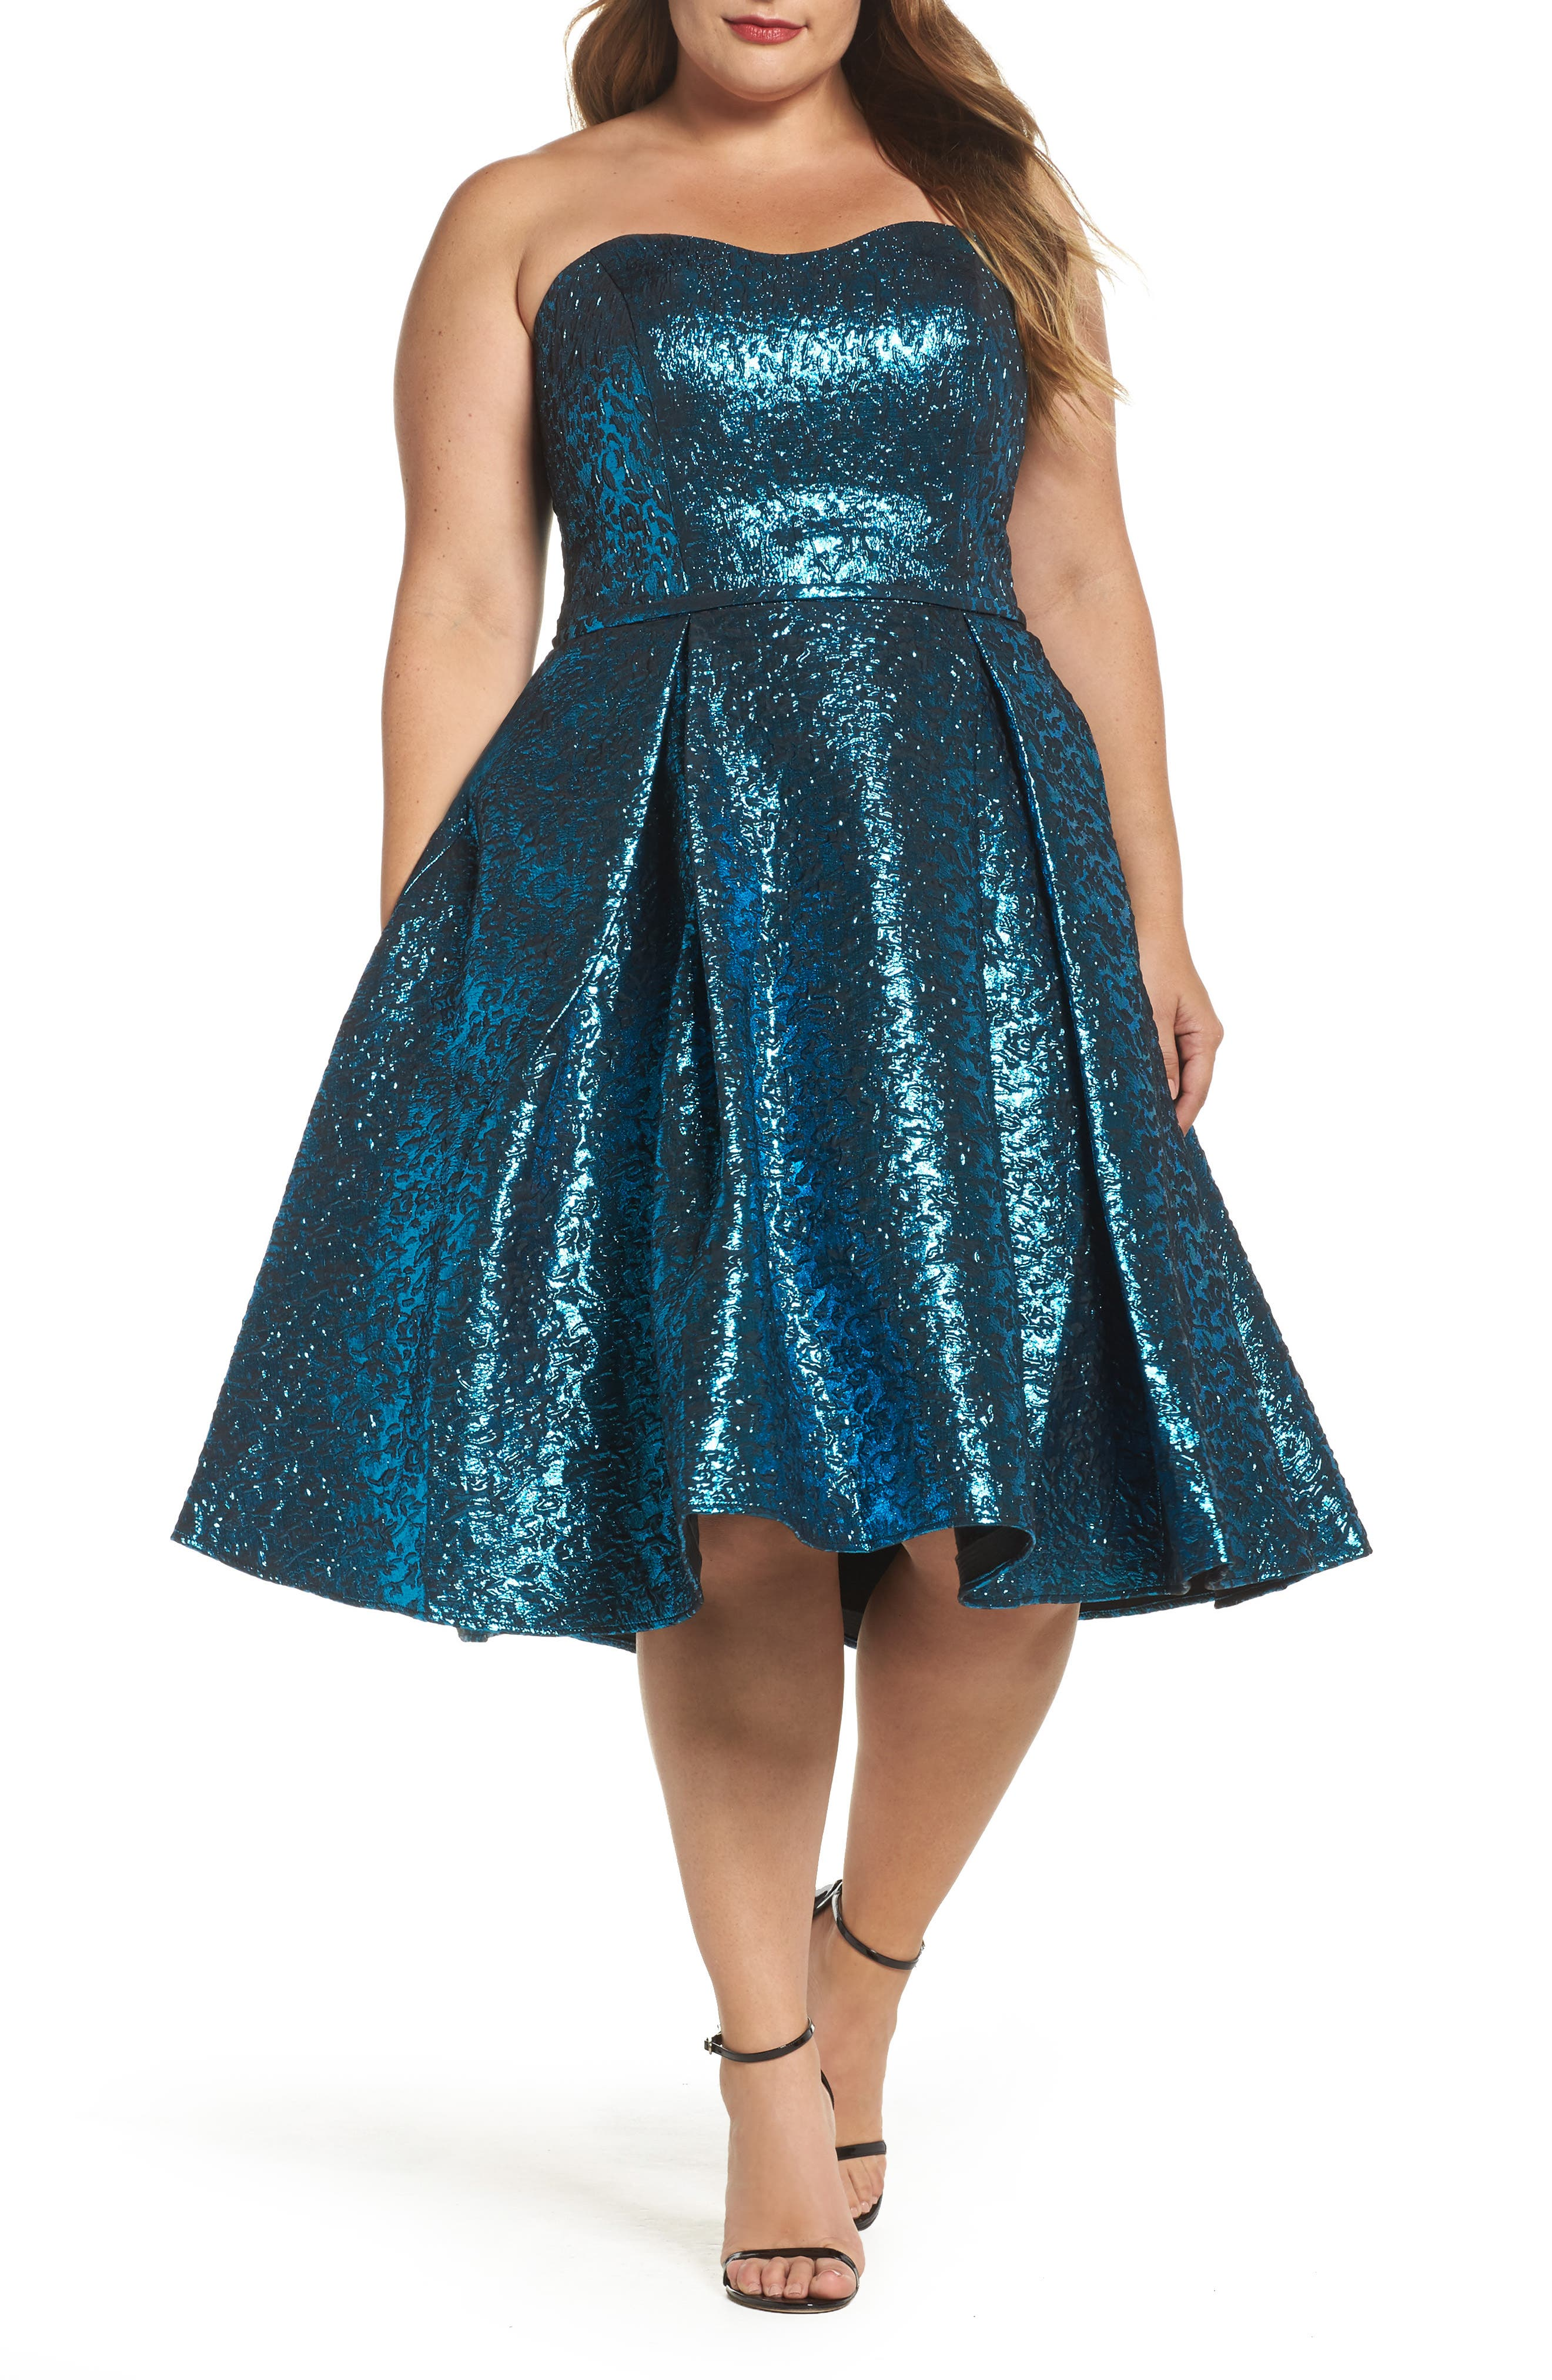 MAC DUGGAL, Metallic Fit & Flare Dress, Main thumbnail 1, color, TURQUOISE